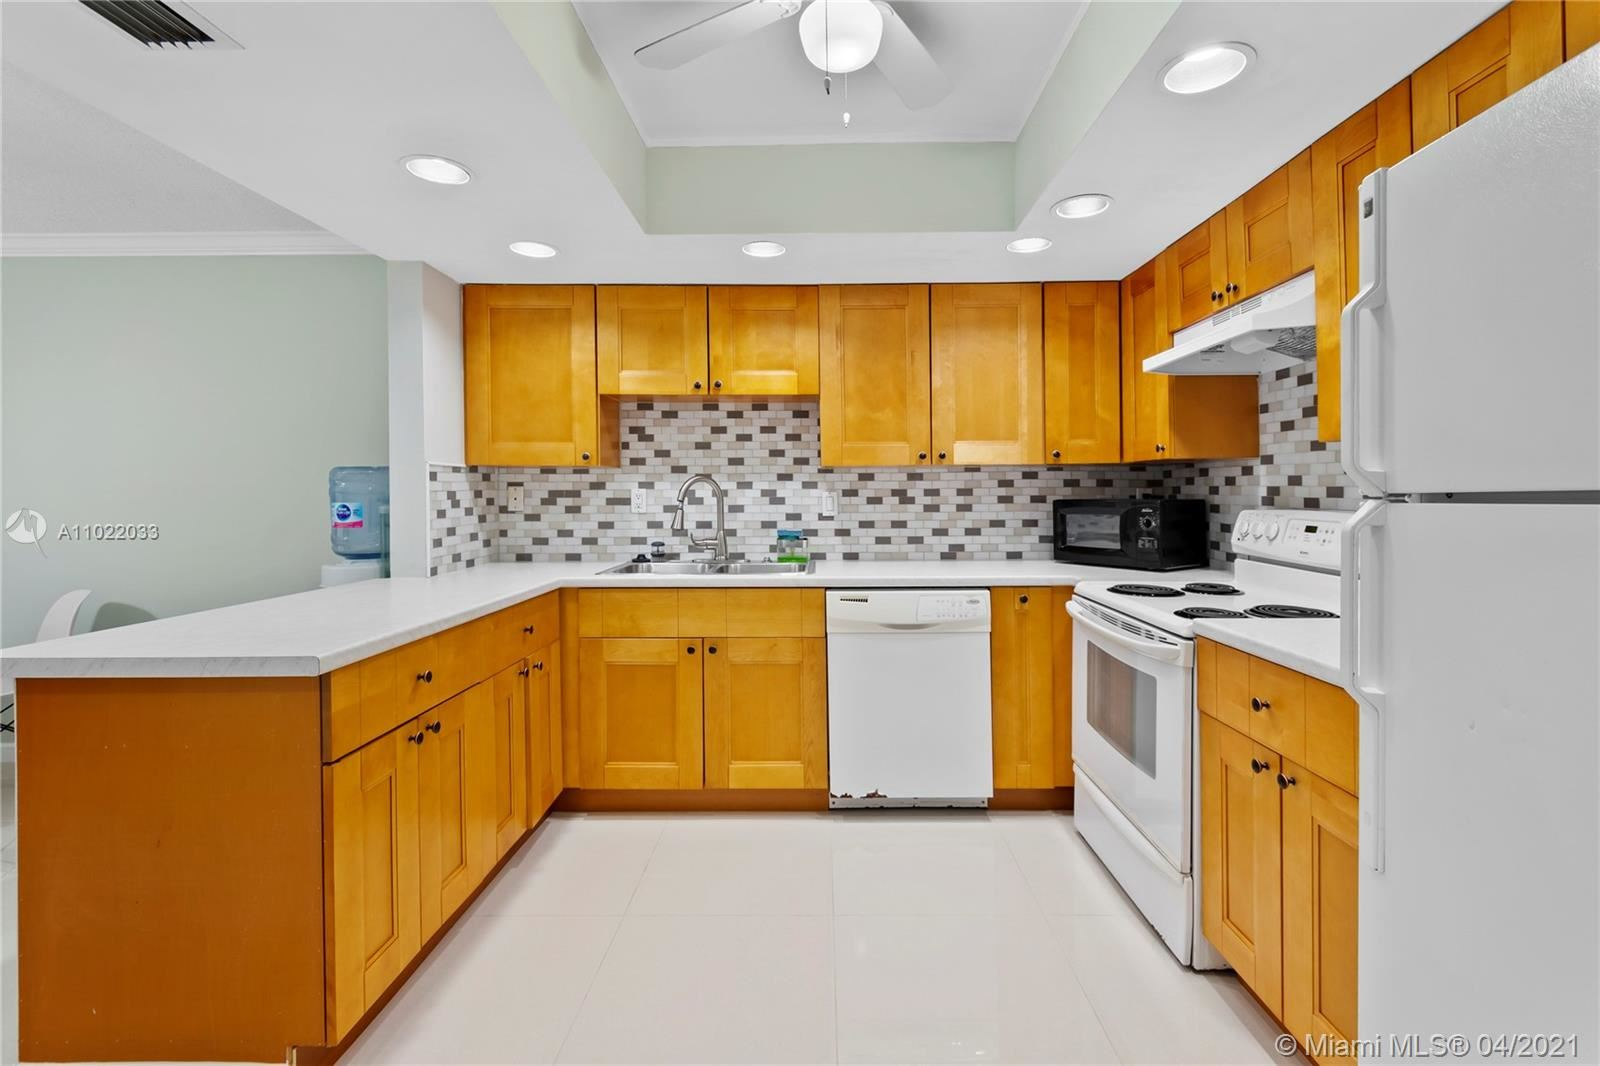 8109 NW 27th St #4, Coral Springs, FL 33065 - #: A11022033